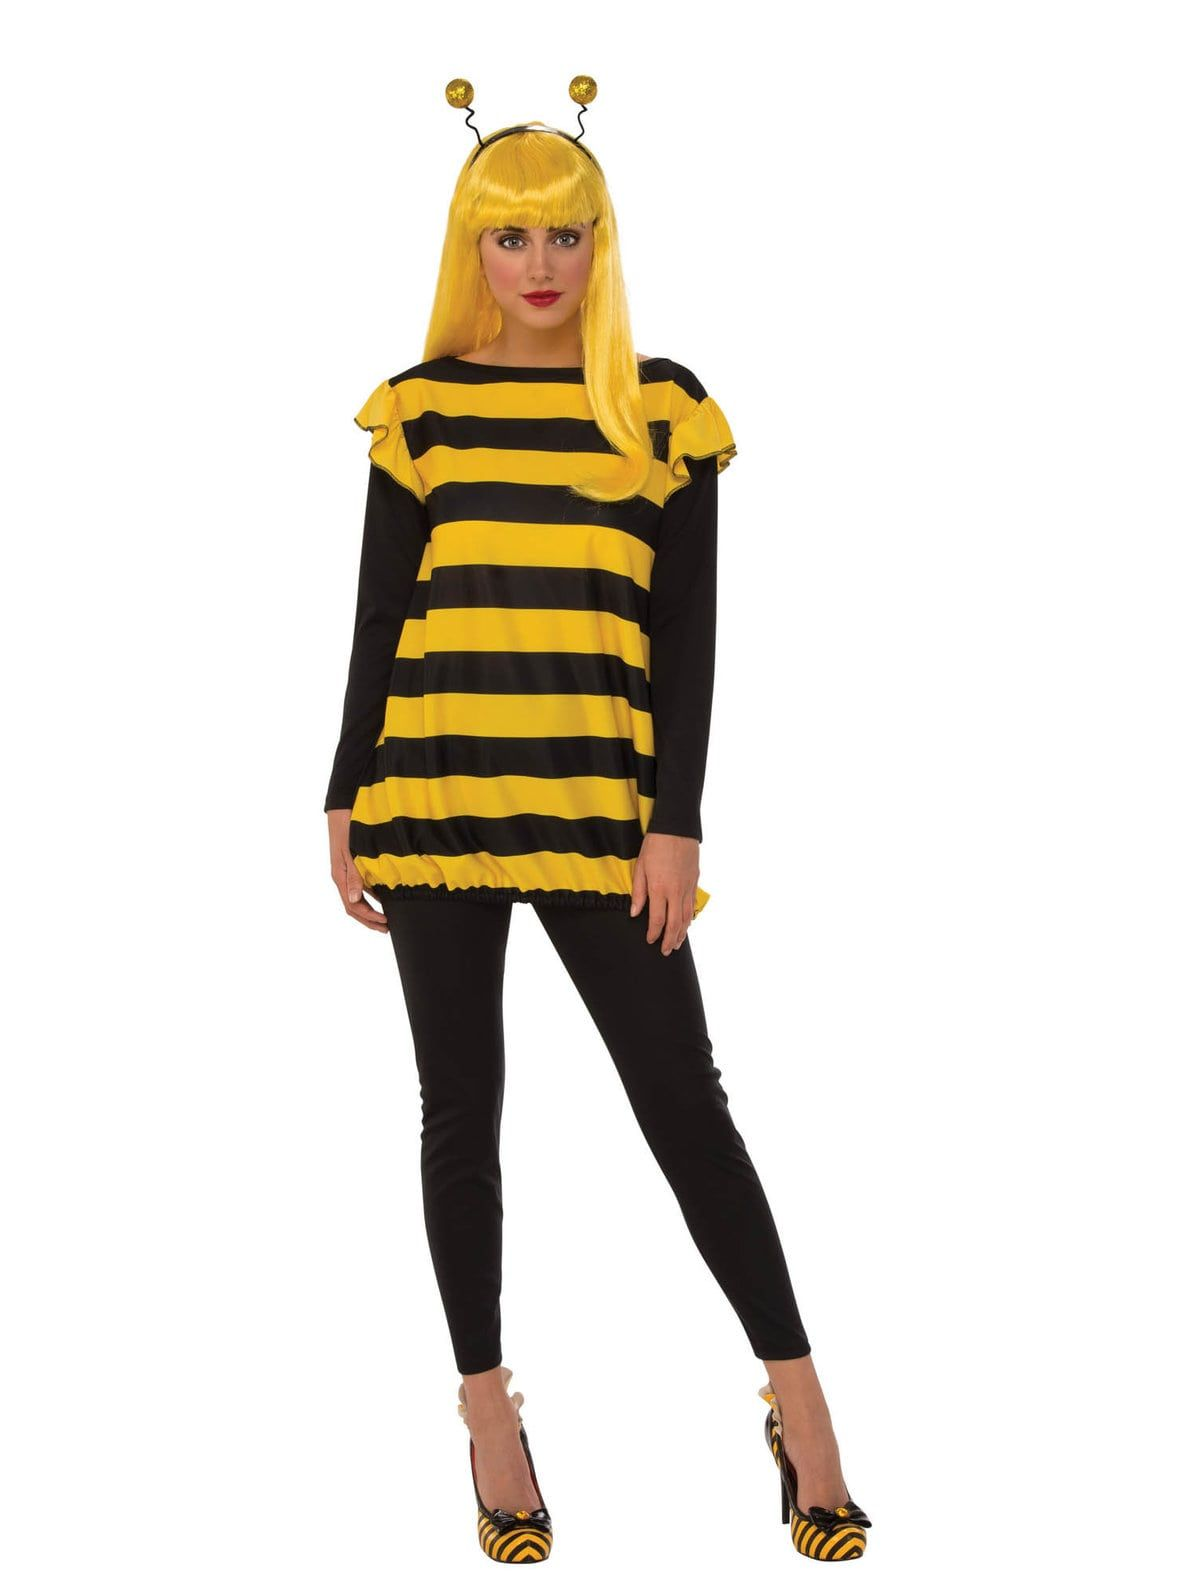 Bumblebee Costume For Women Bee Costume Bumble Bee Costume Bee